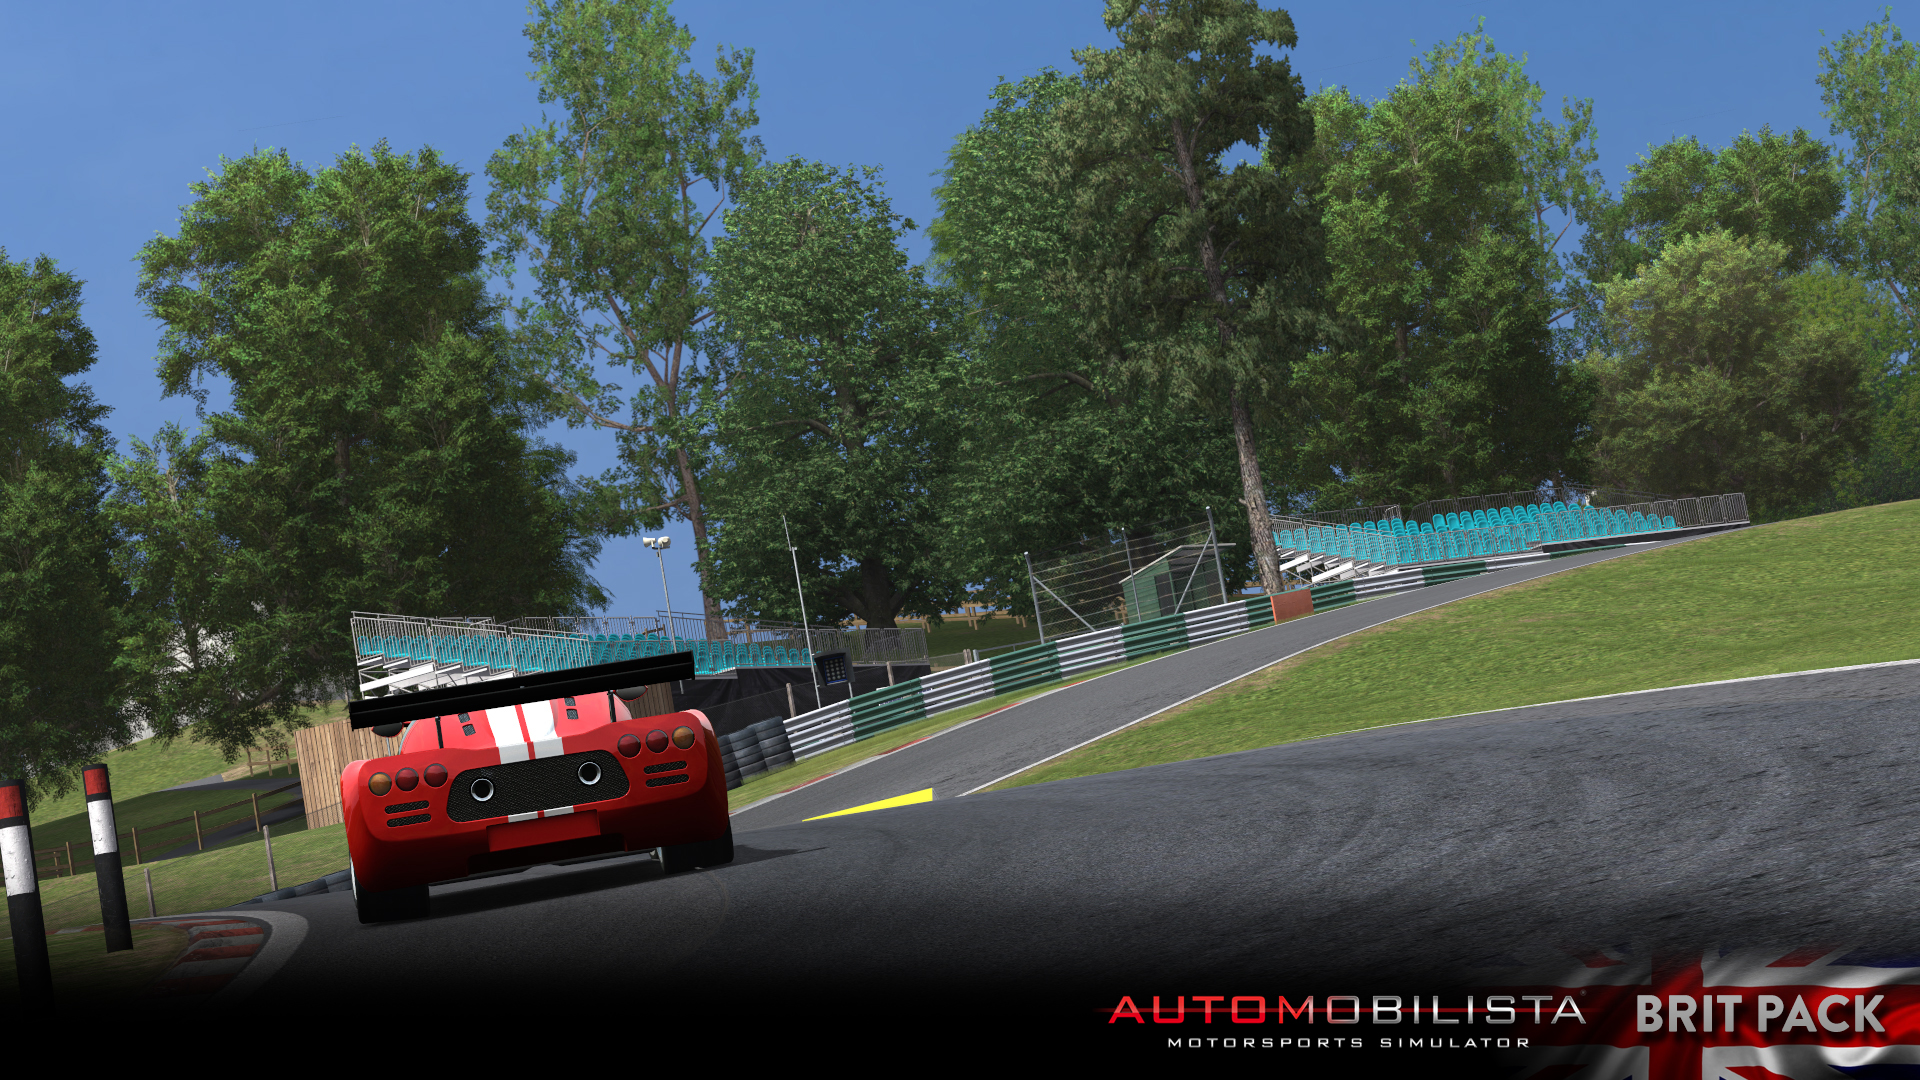 Automobilista - Season Pass for all DLCs screenshot